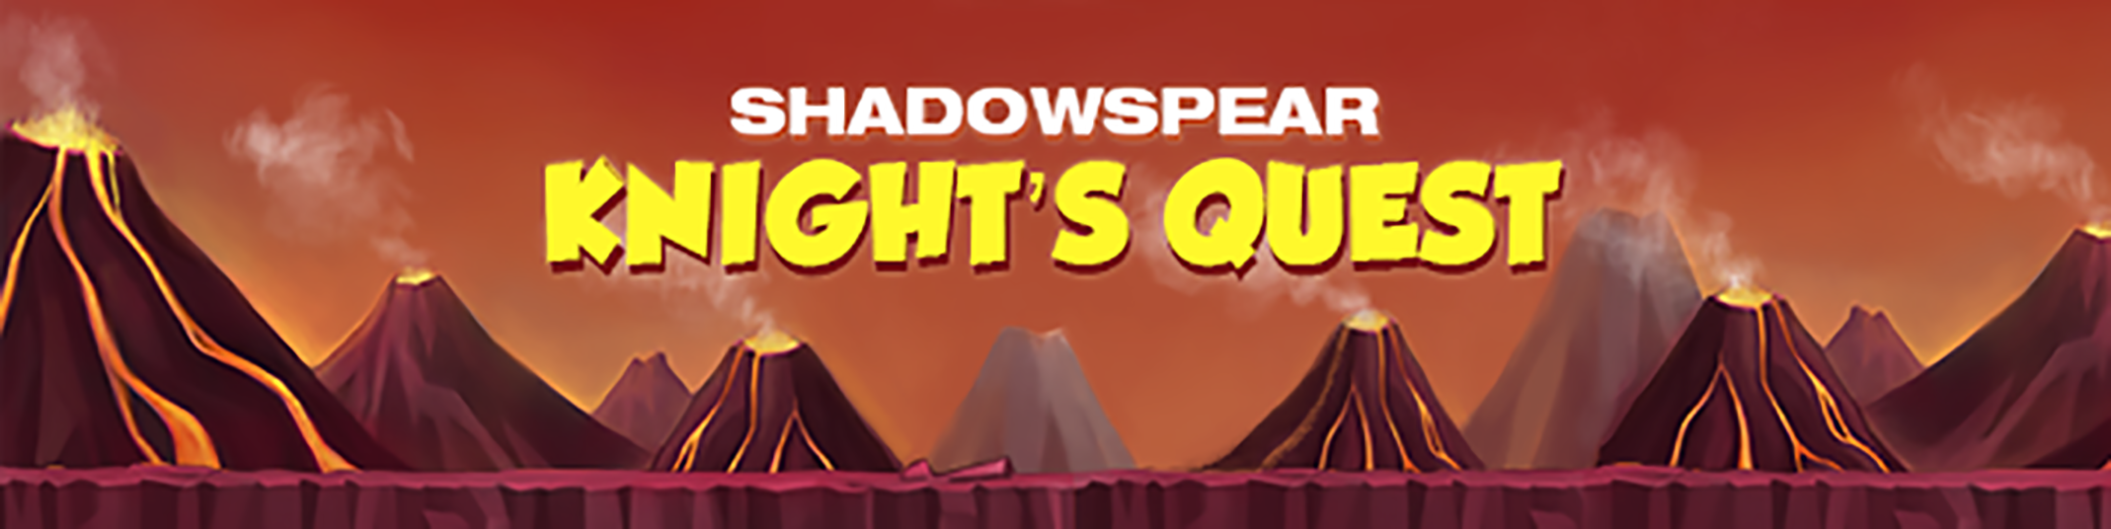 Shadowspear Knight's Quest